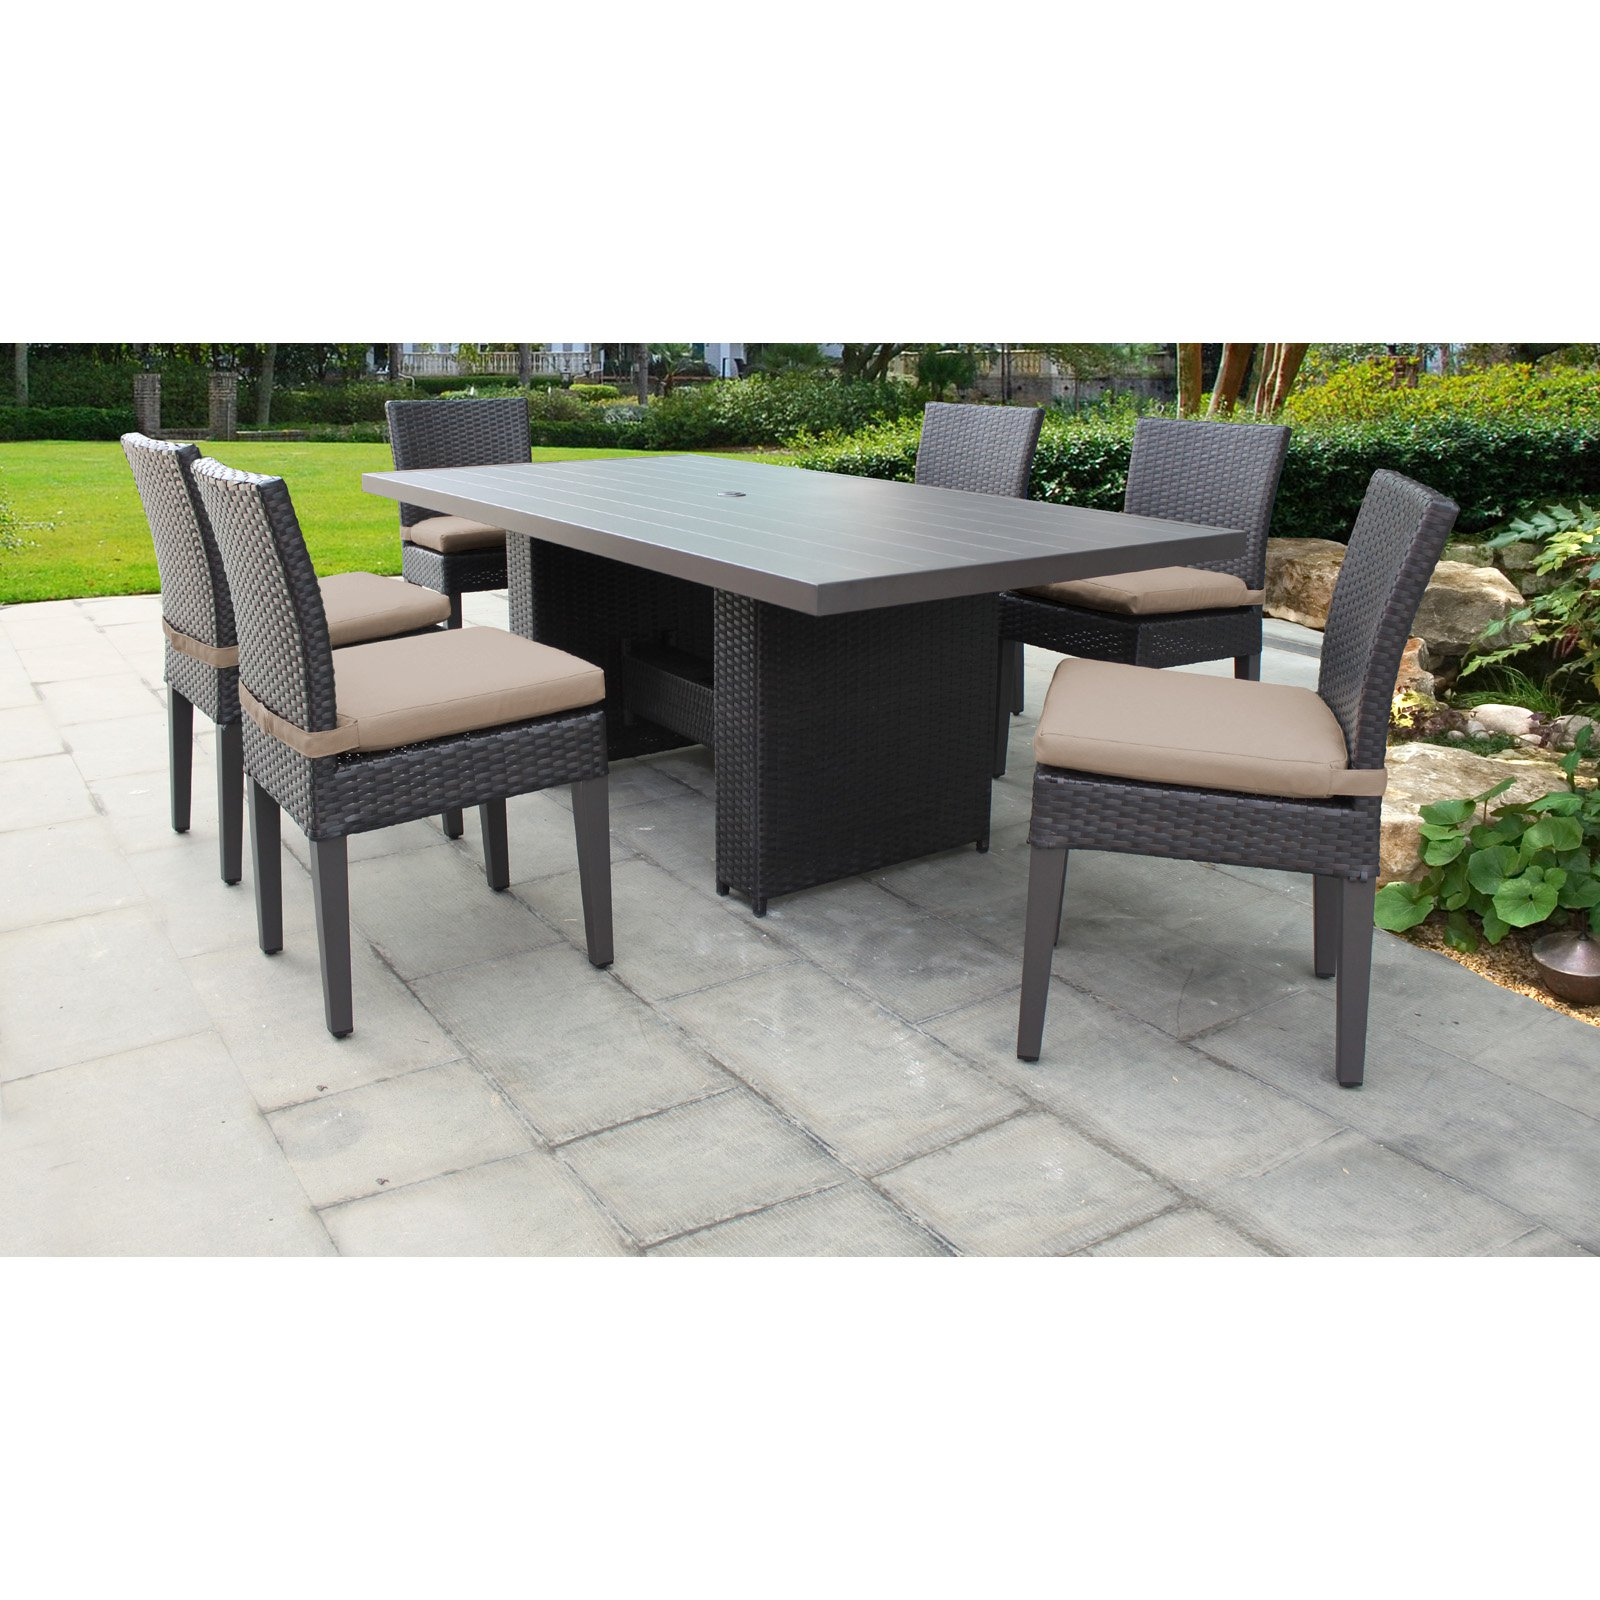 Tk Classics Belle Wicker 7 Piece Patio Dining Set With